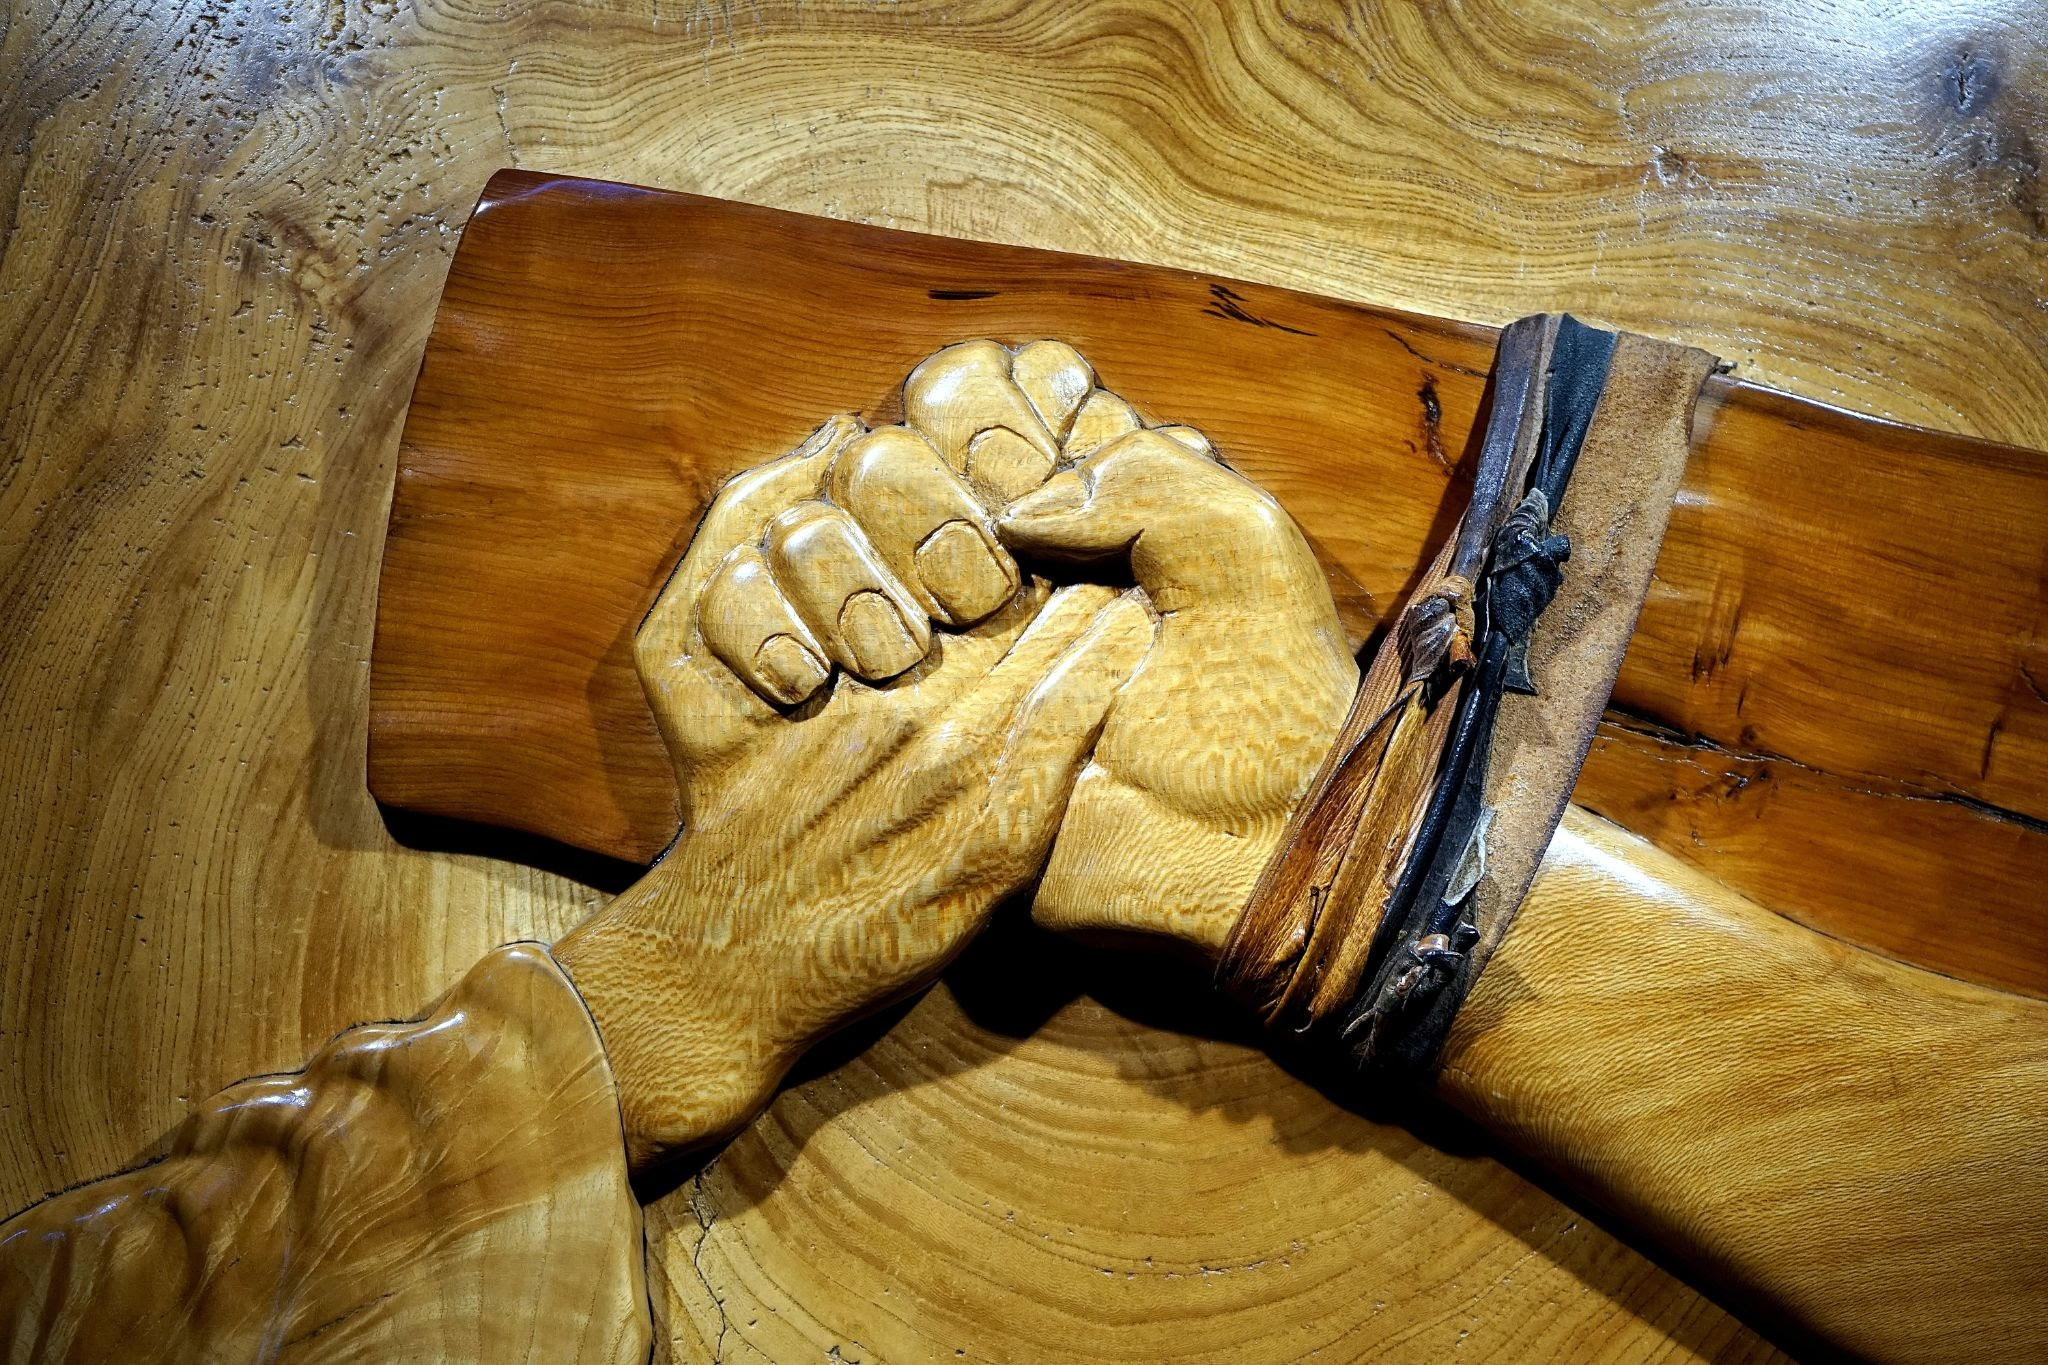 Jesus' hand grasping another, pinned to the cross